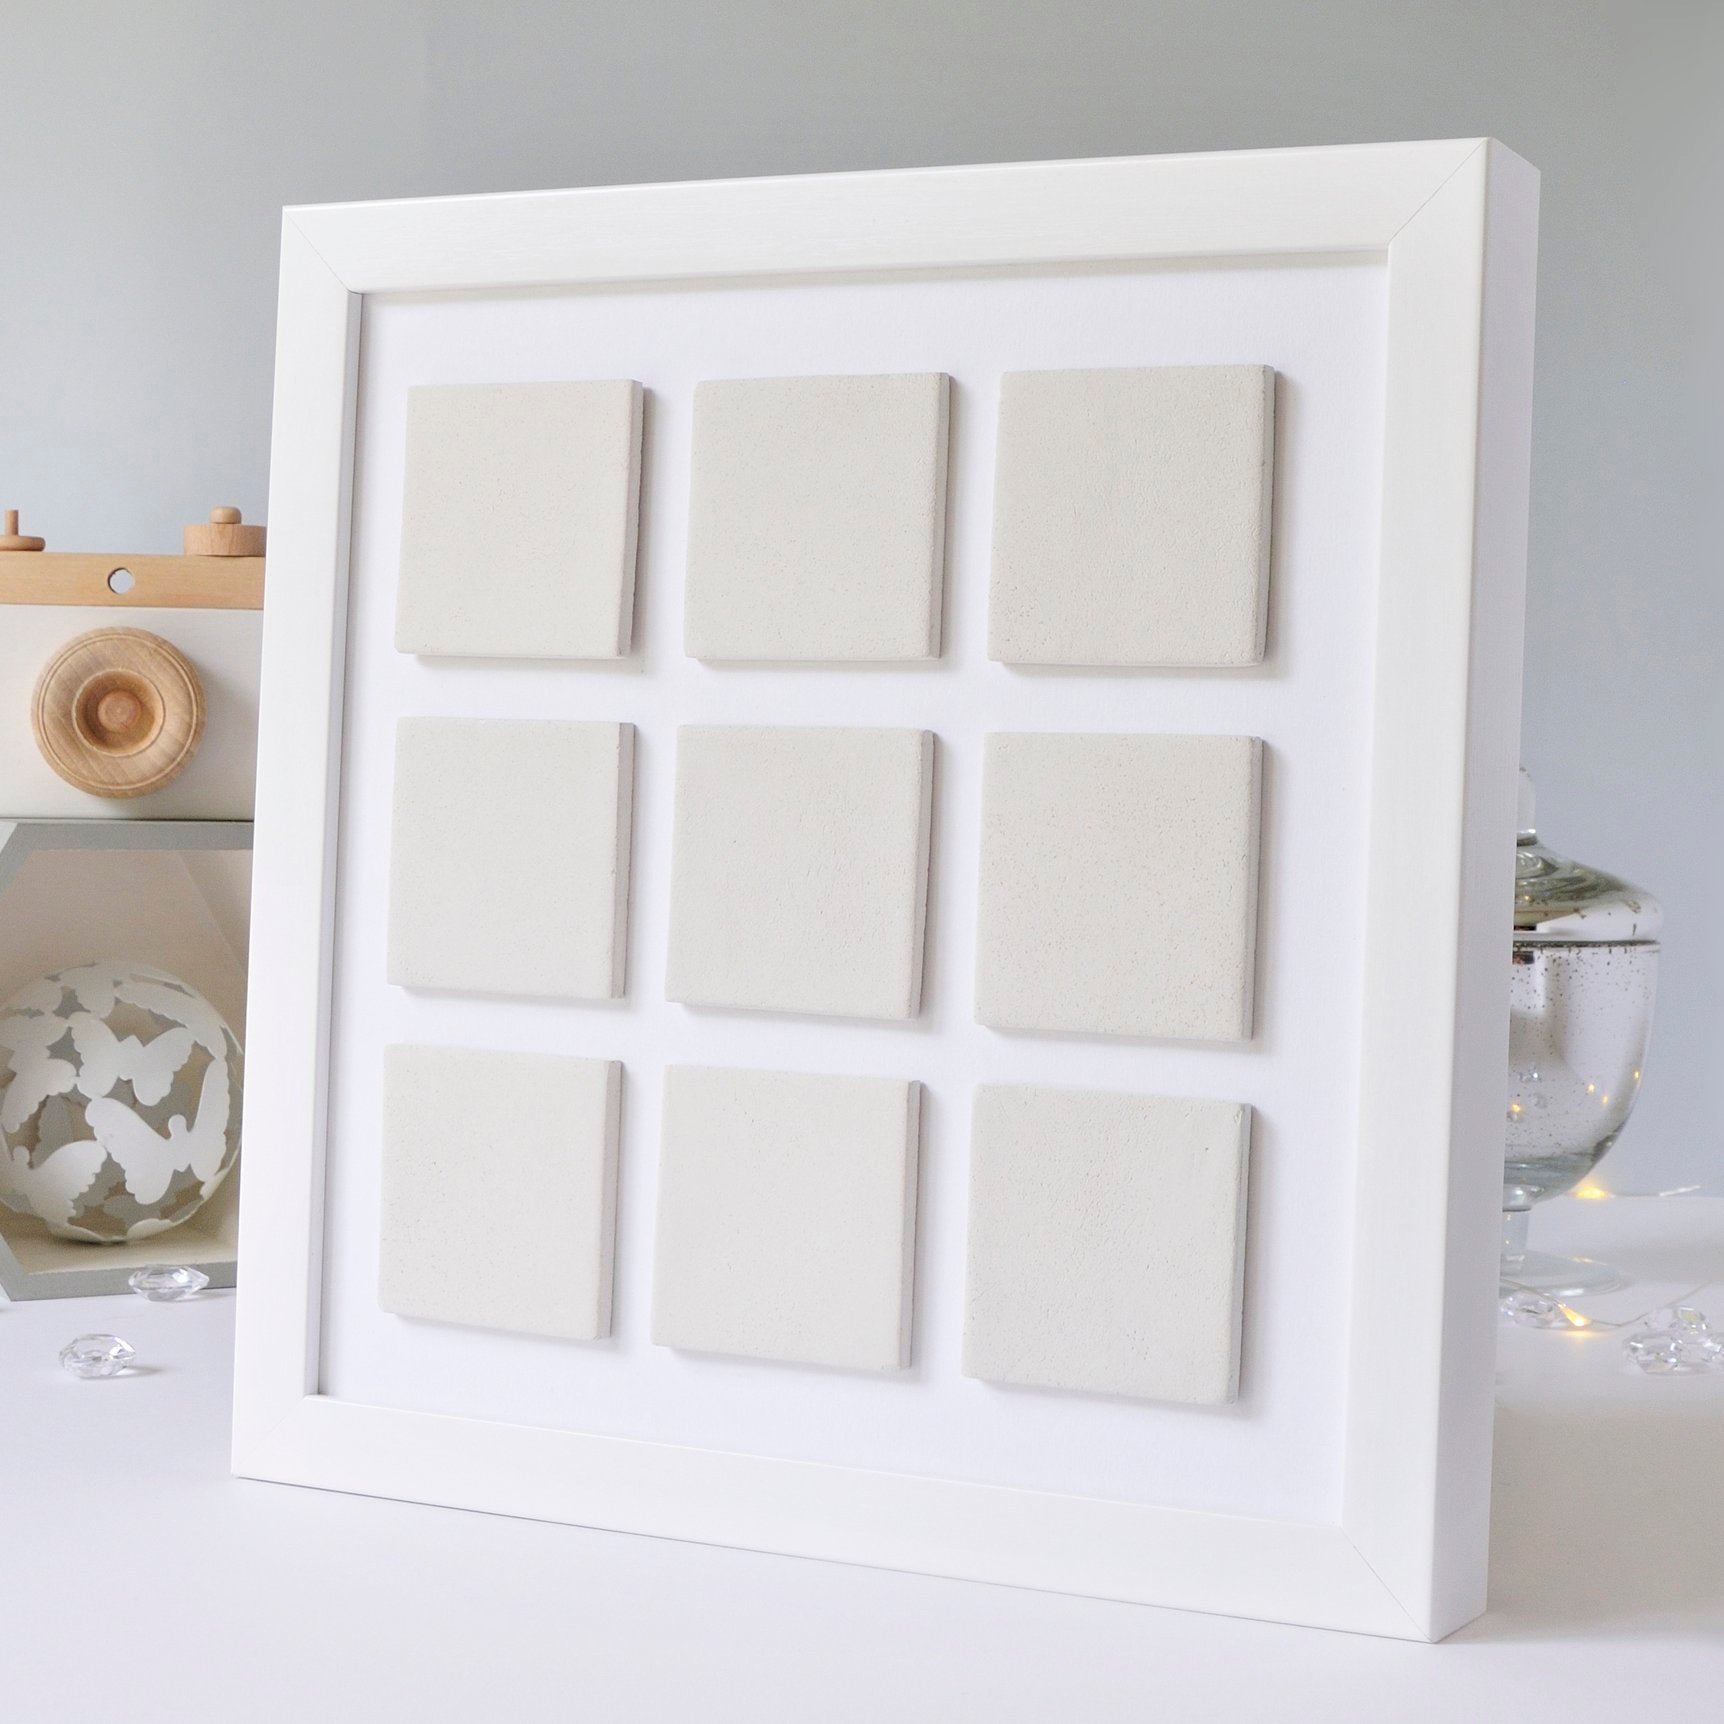 Design Your Own Clay Tiled Memory Frame